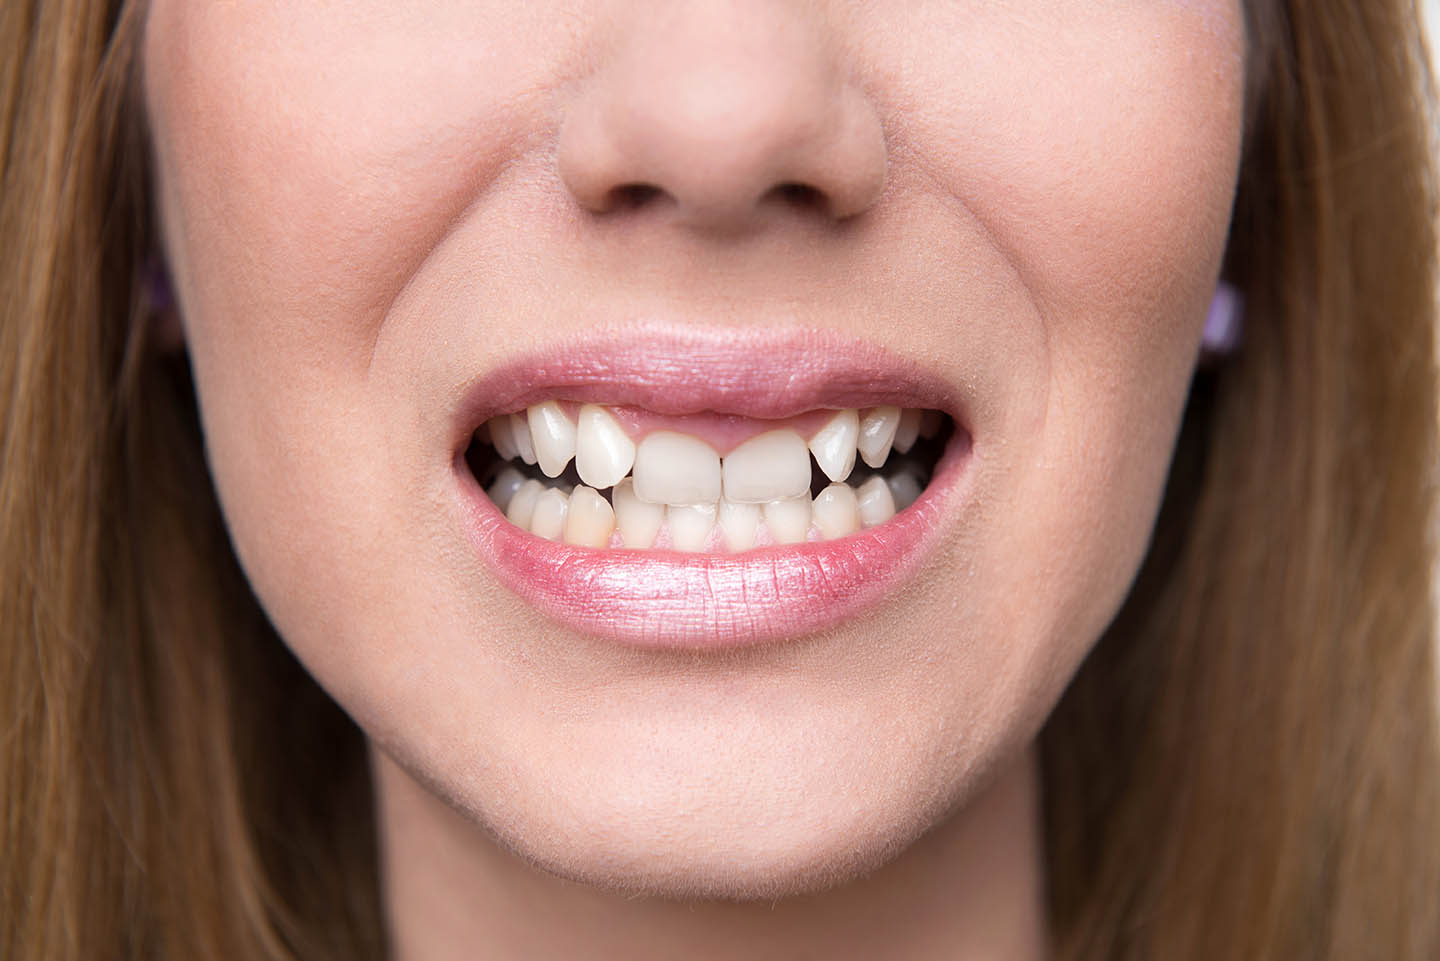 Teeth that can be improved with cosmetic dentistry